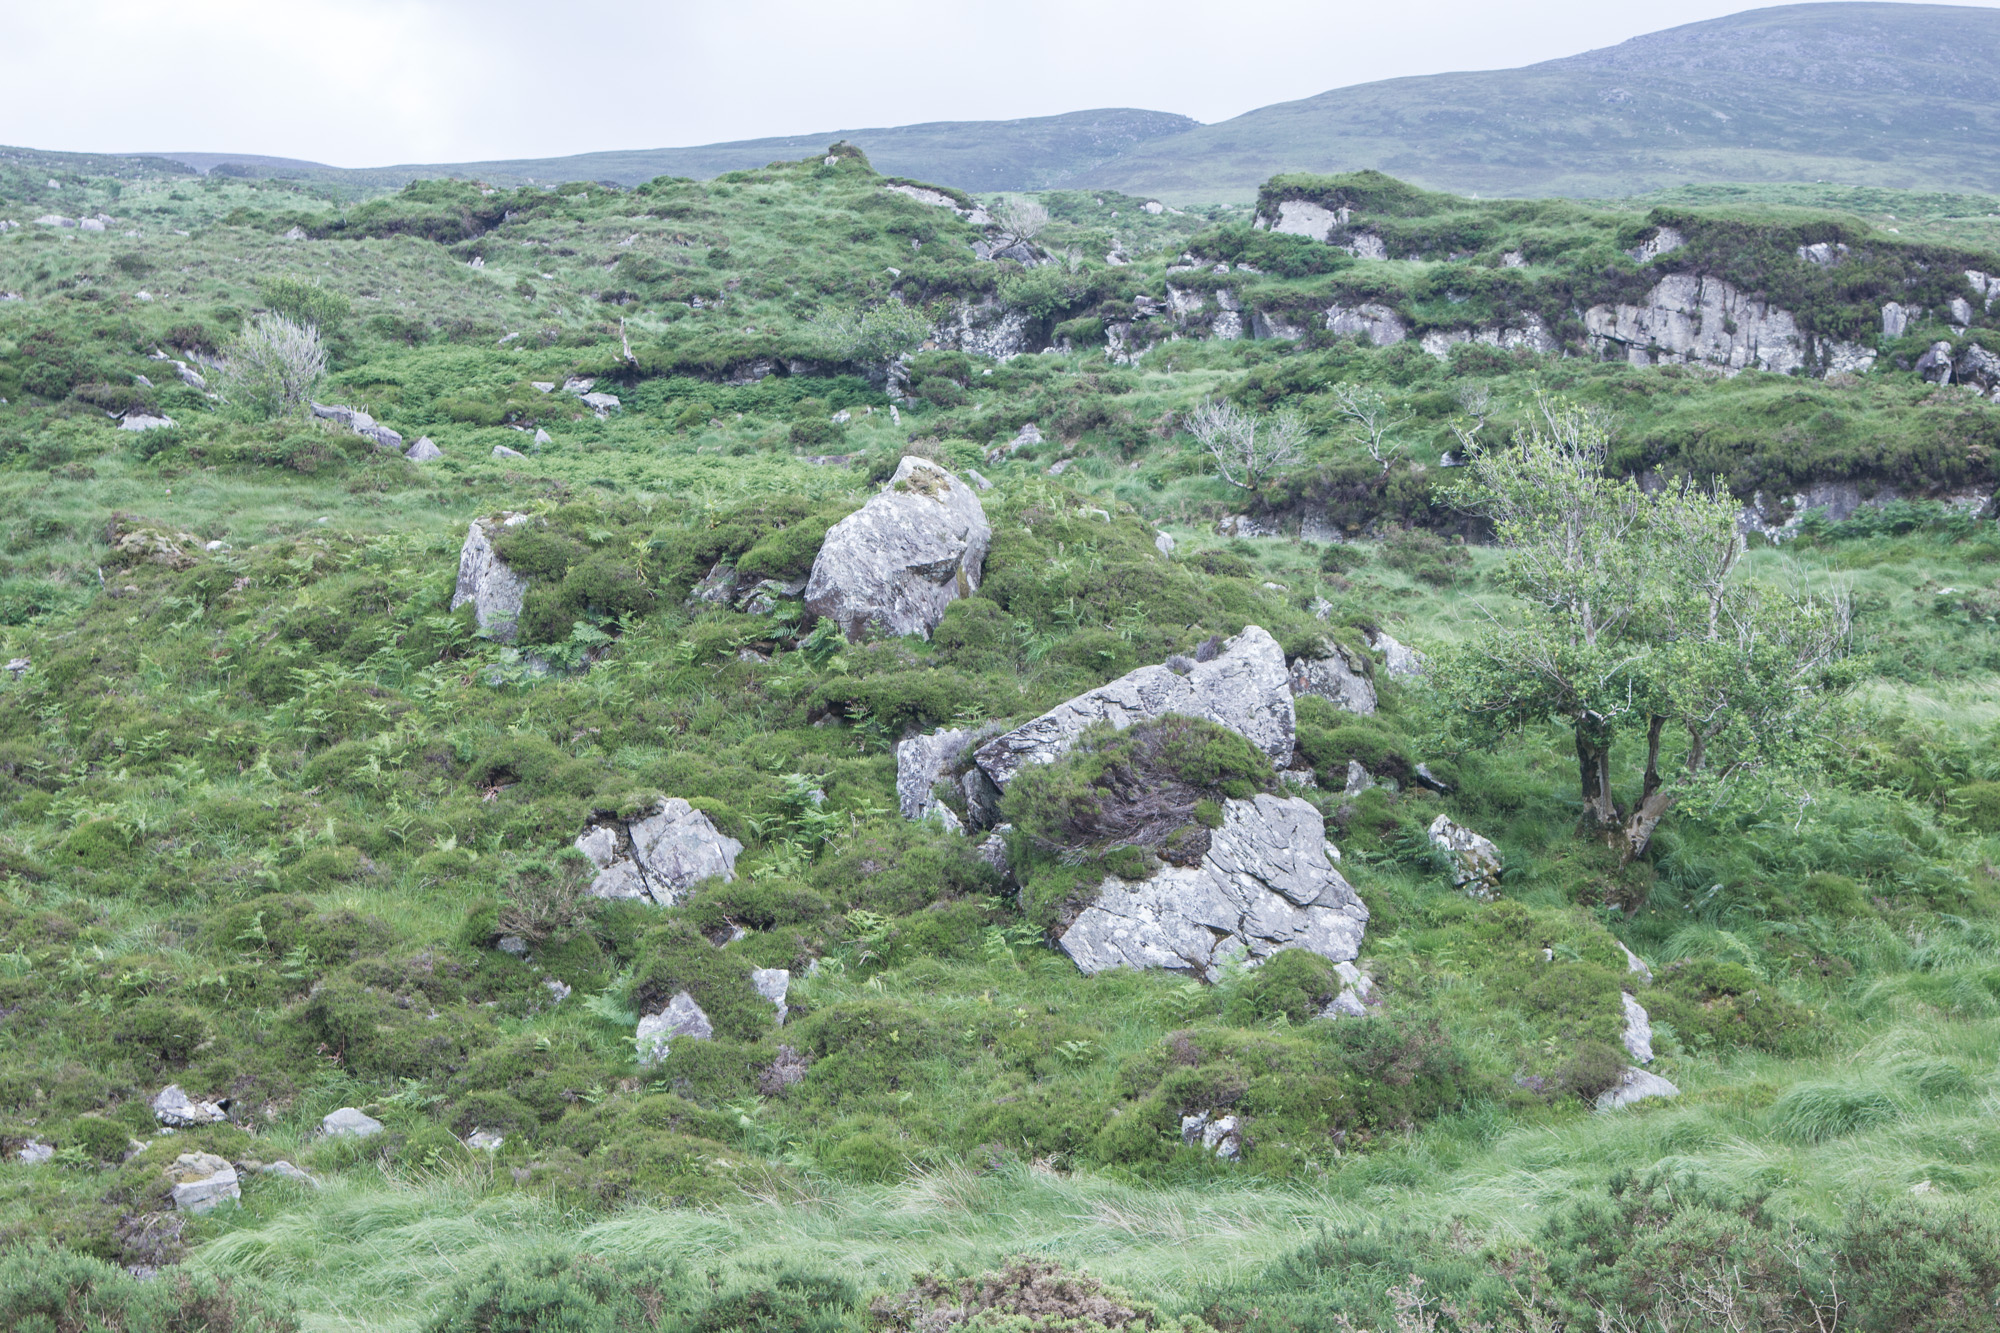 Torc Mountain Trail in Killarney National Park surrounded by rocks, grass, and a small tree